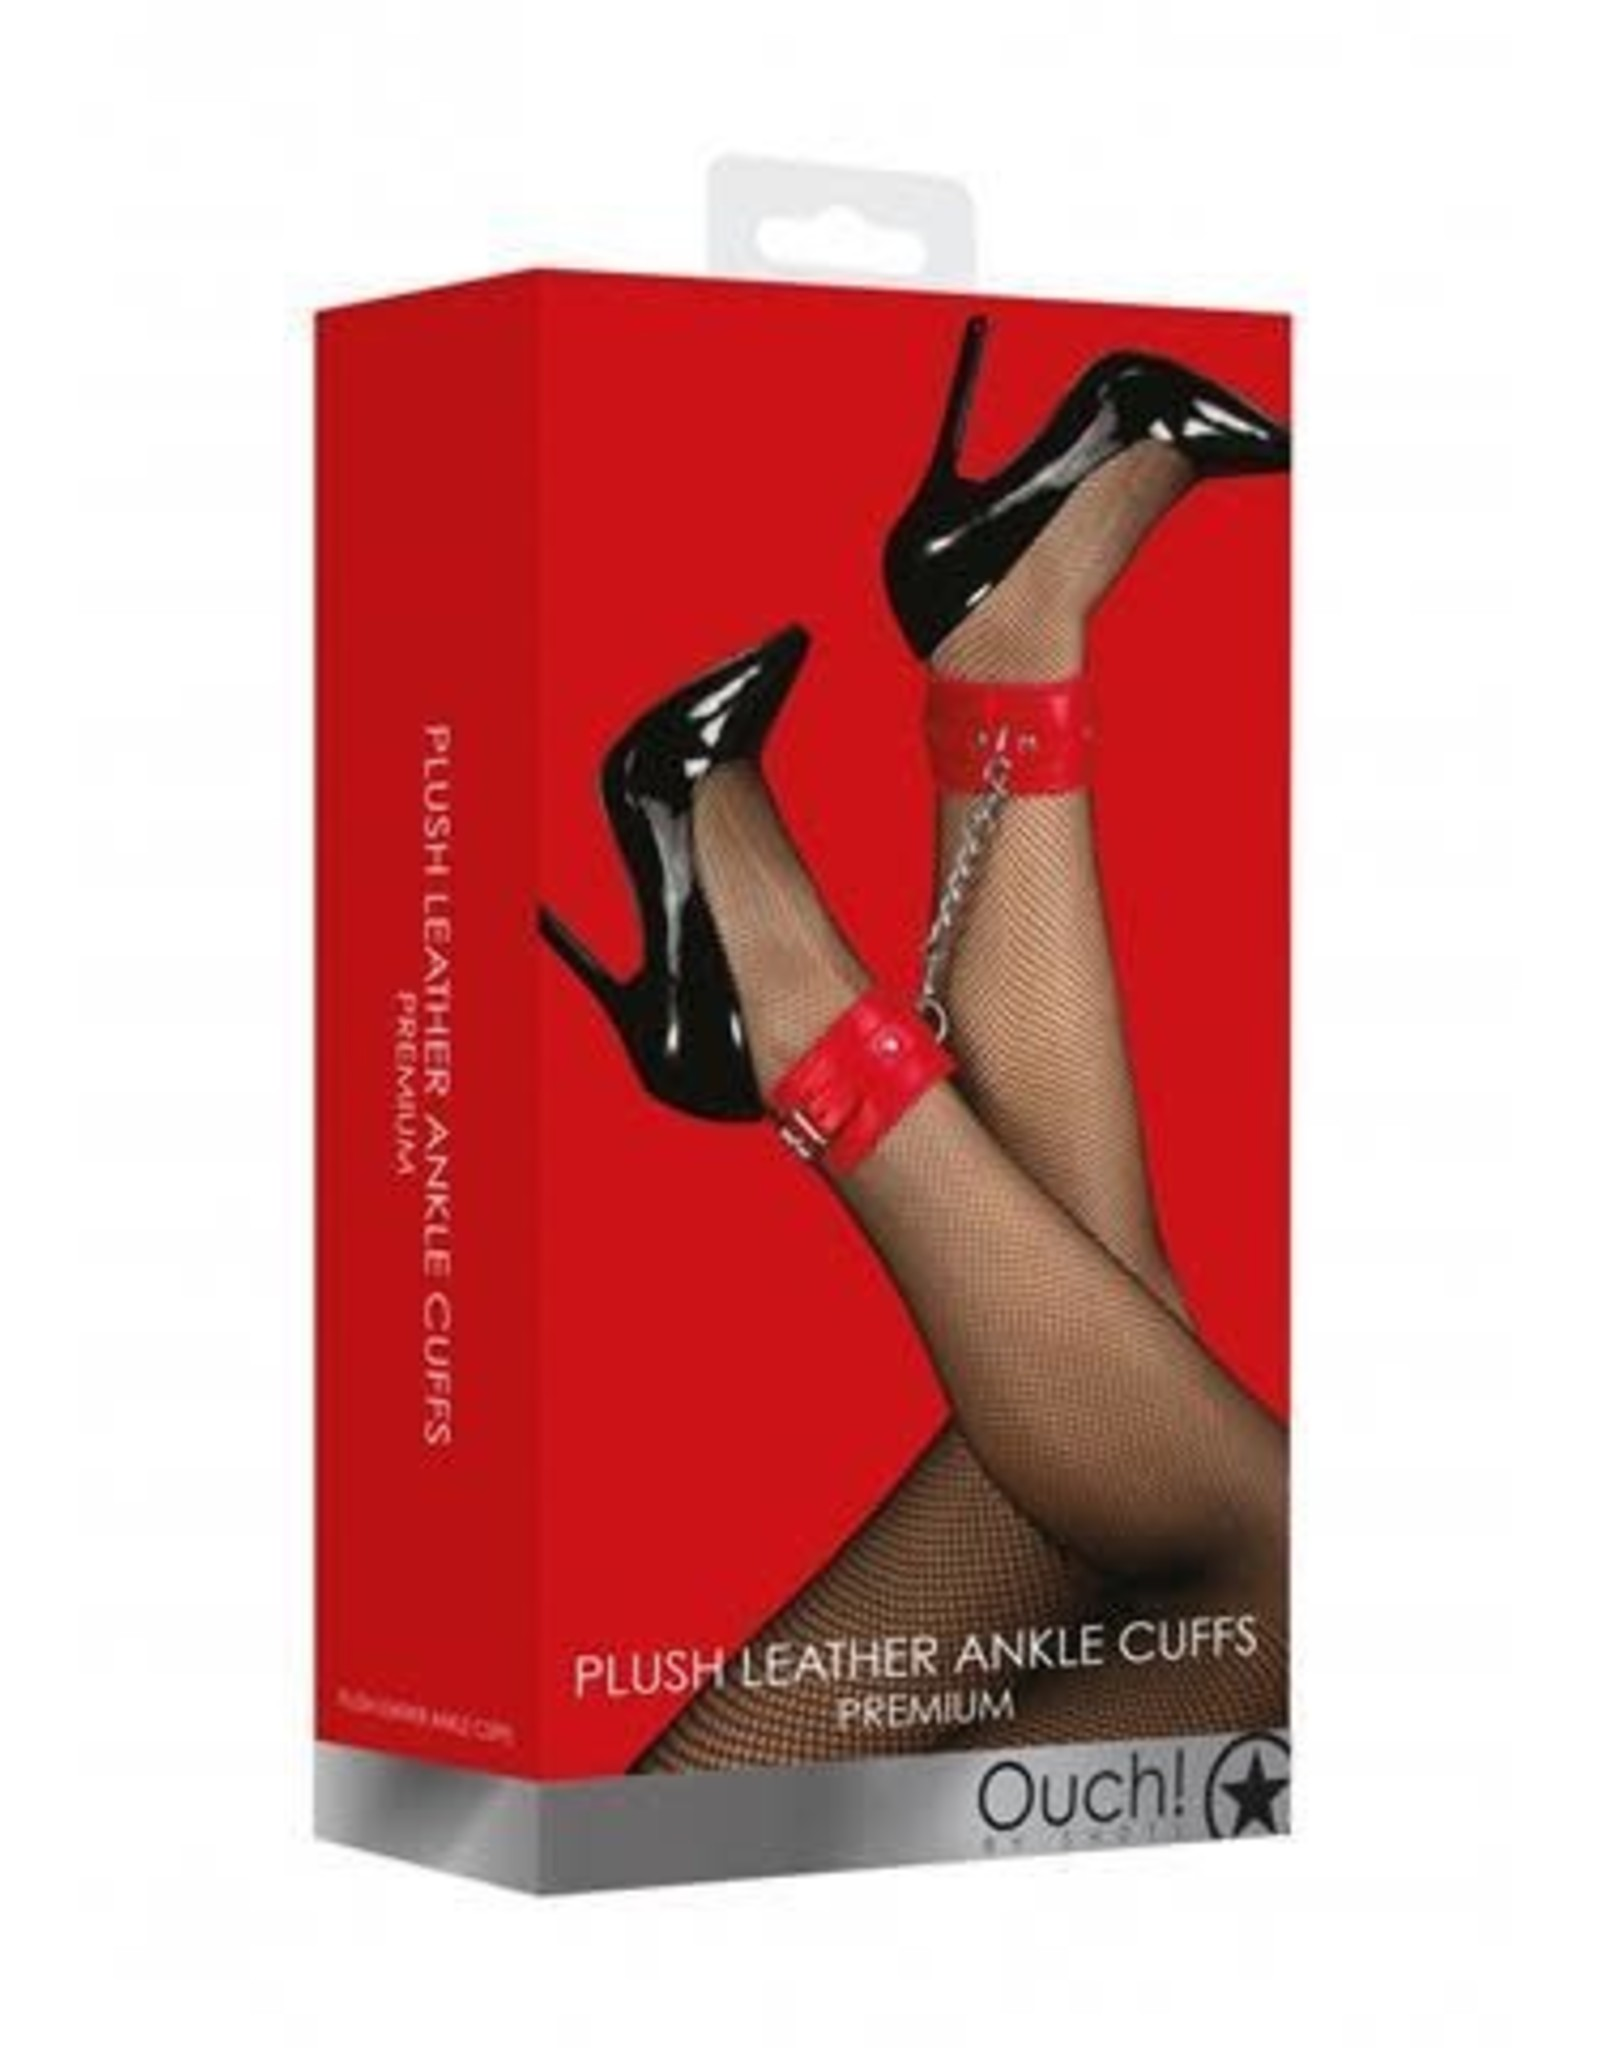 Ouch! Ouch! Plush Leather Ankle Cuffs in Red